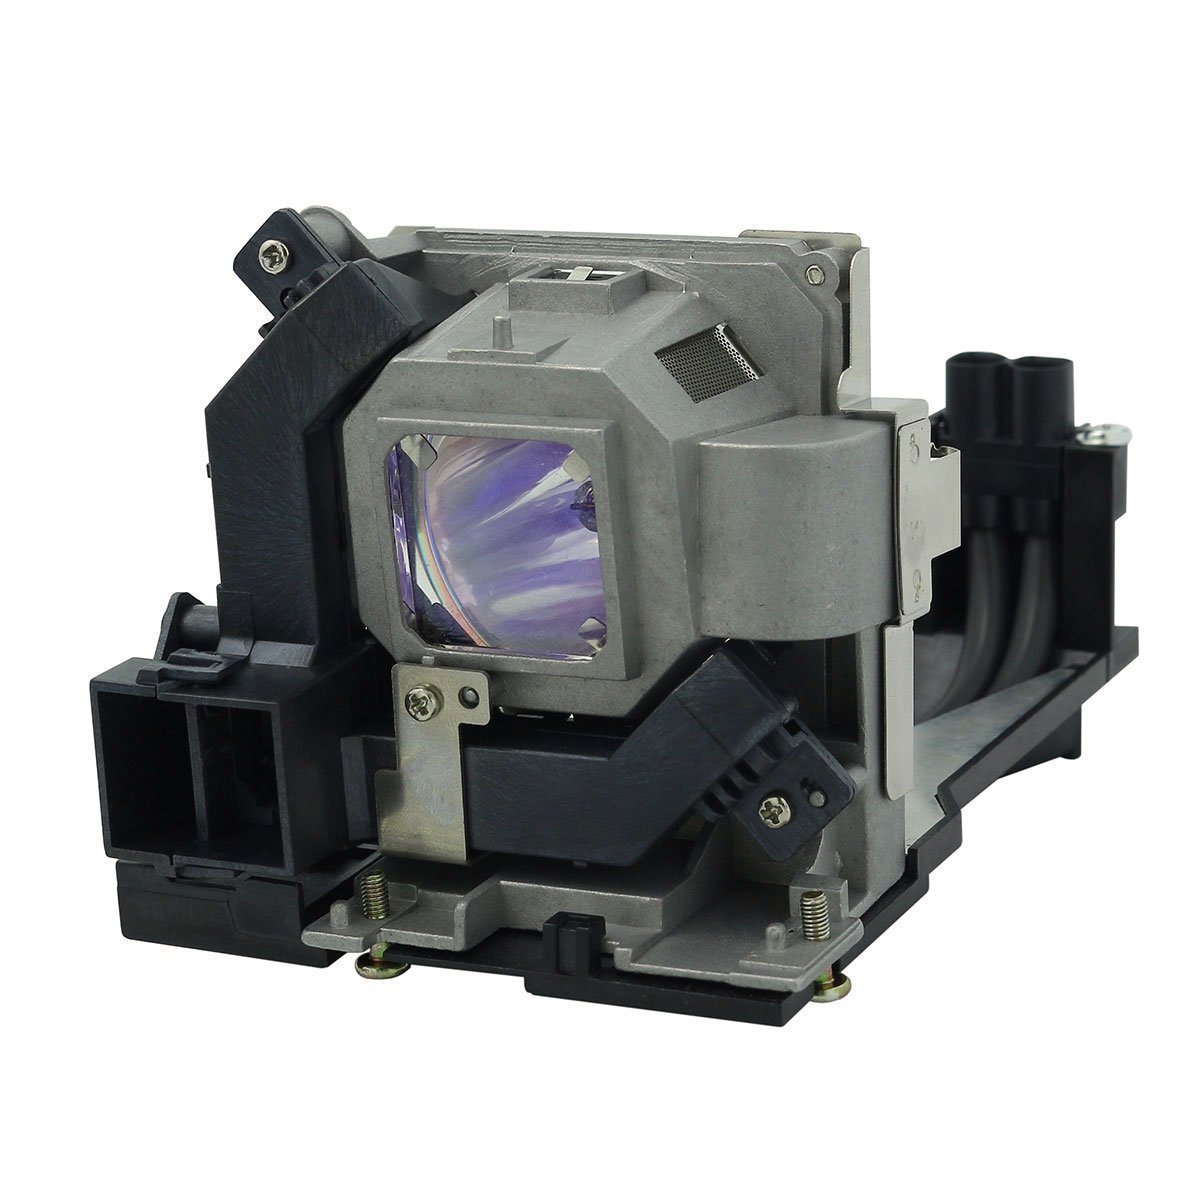 Watoman NP30LP Original Replacement Projector Lamp with Complete Housing for NEC M332XS M352WS M402H M402W M402X Projectors